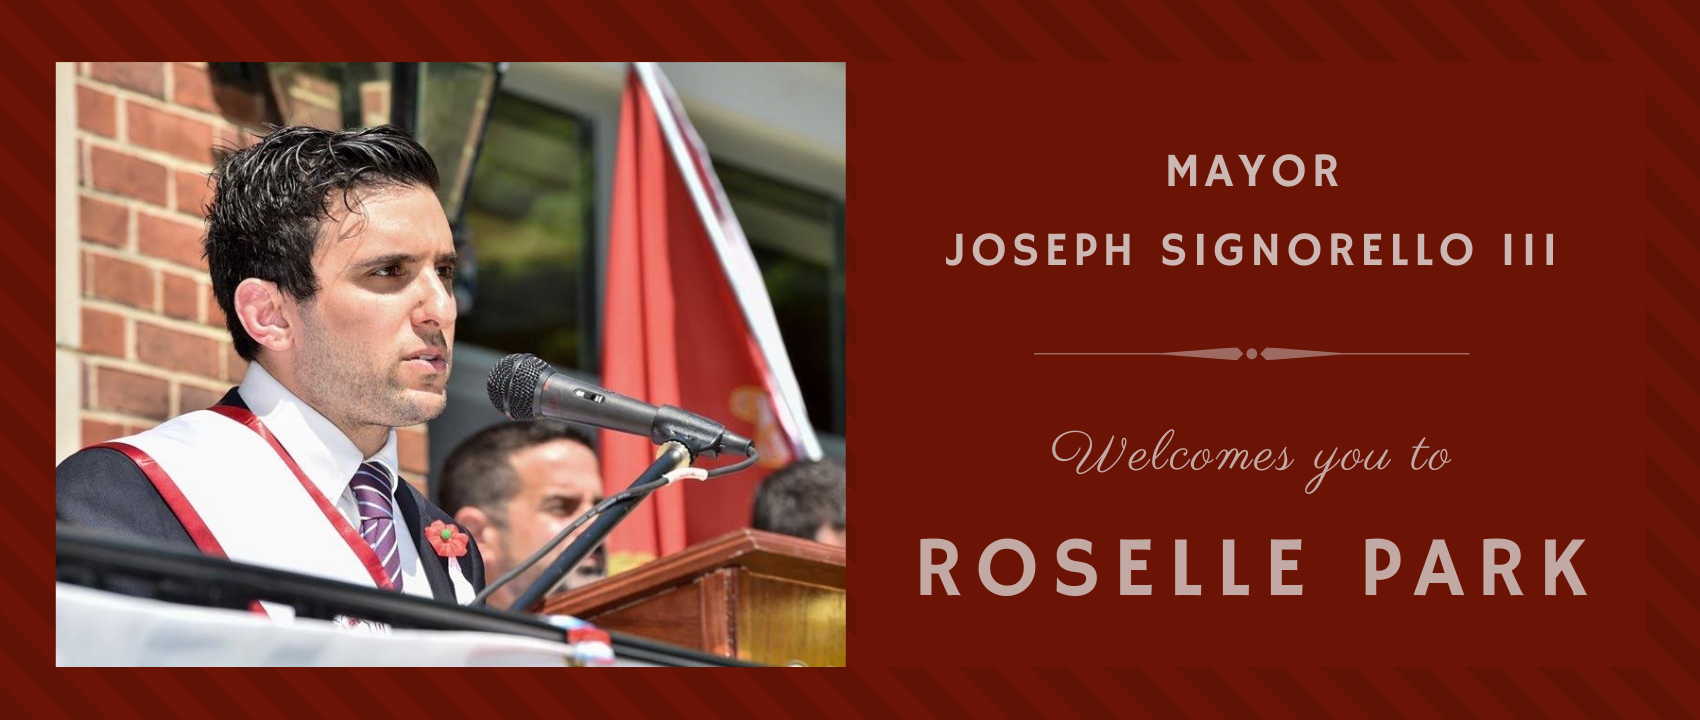 Mayor Joseph Signorello III Welcomes you to Roselle Park